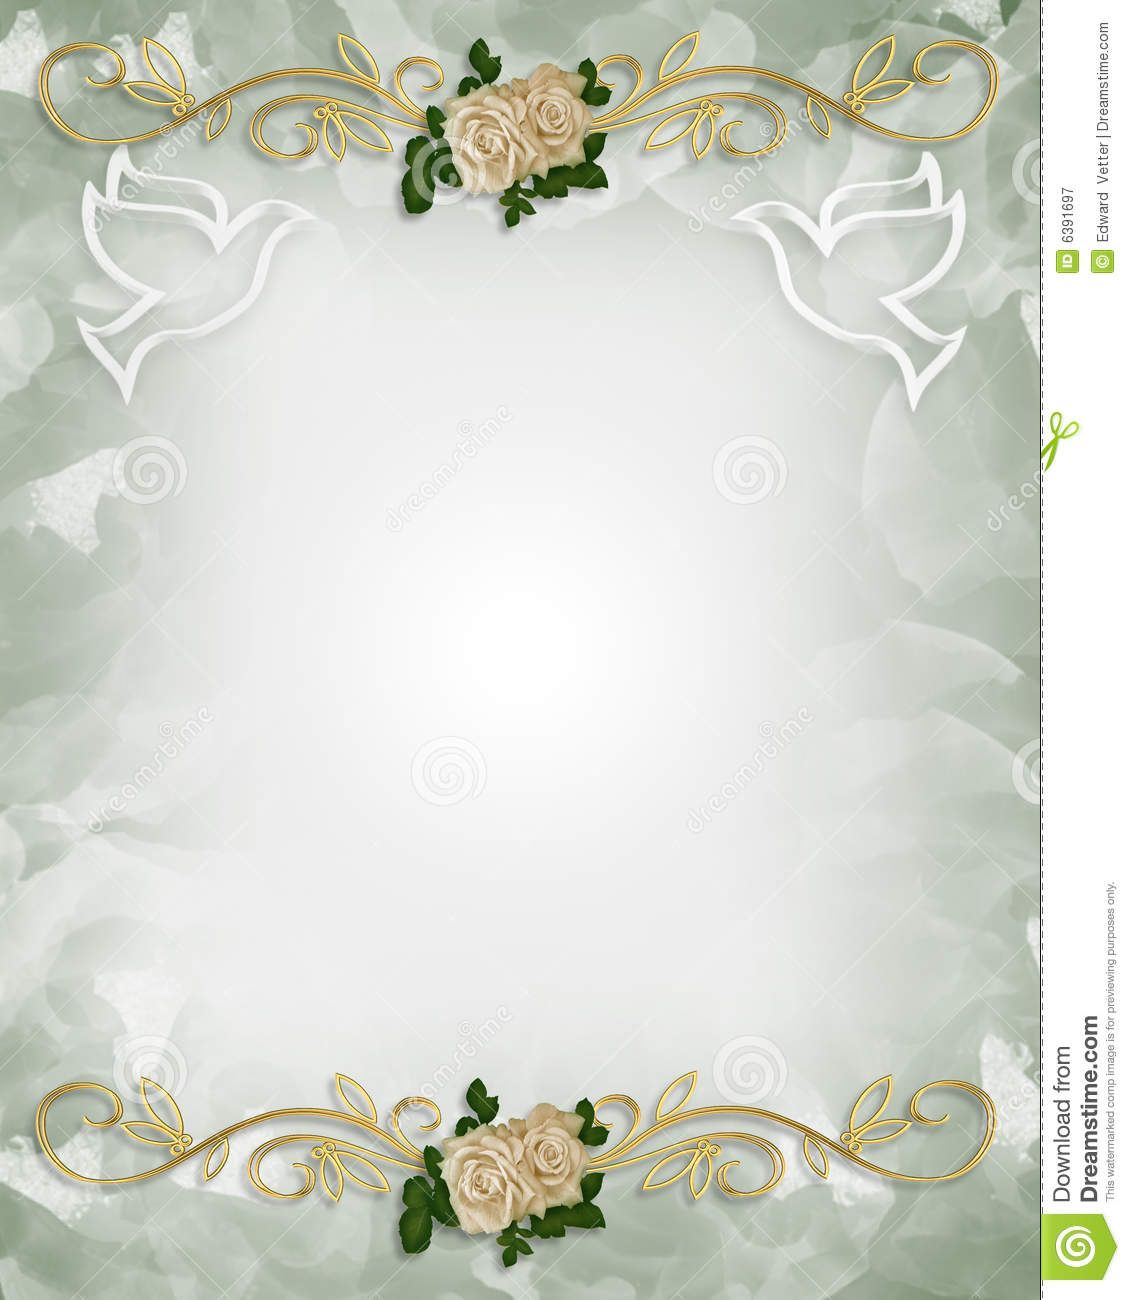 Image Result For Free Editing Invitation Card Christening Background